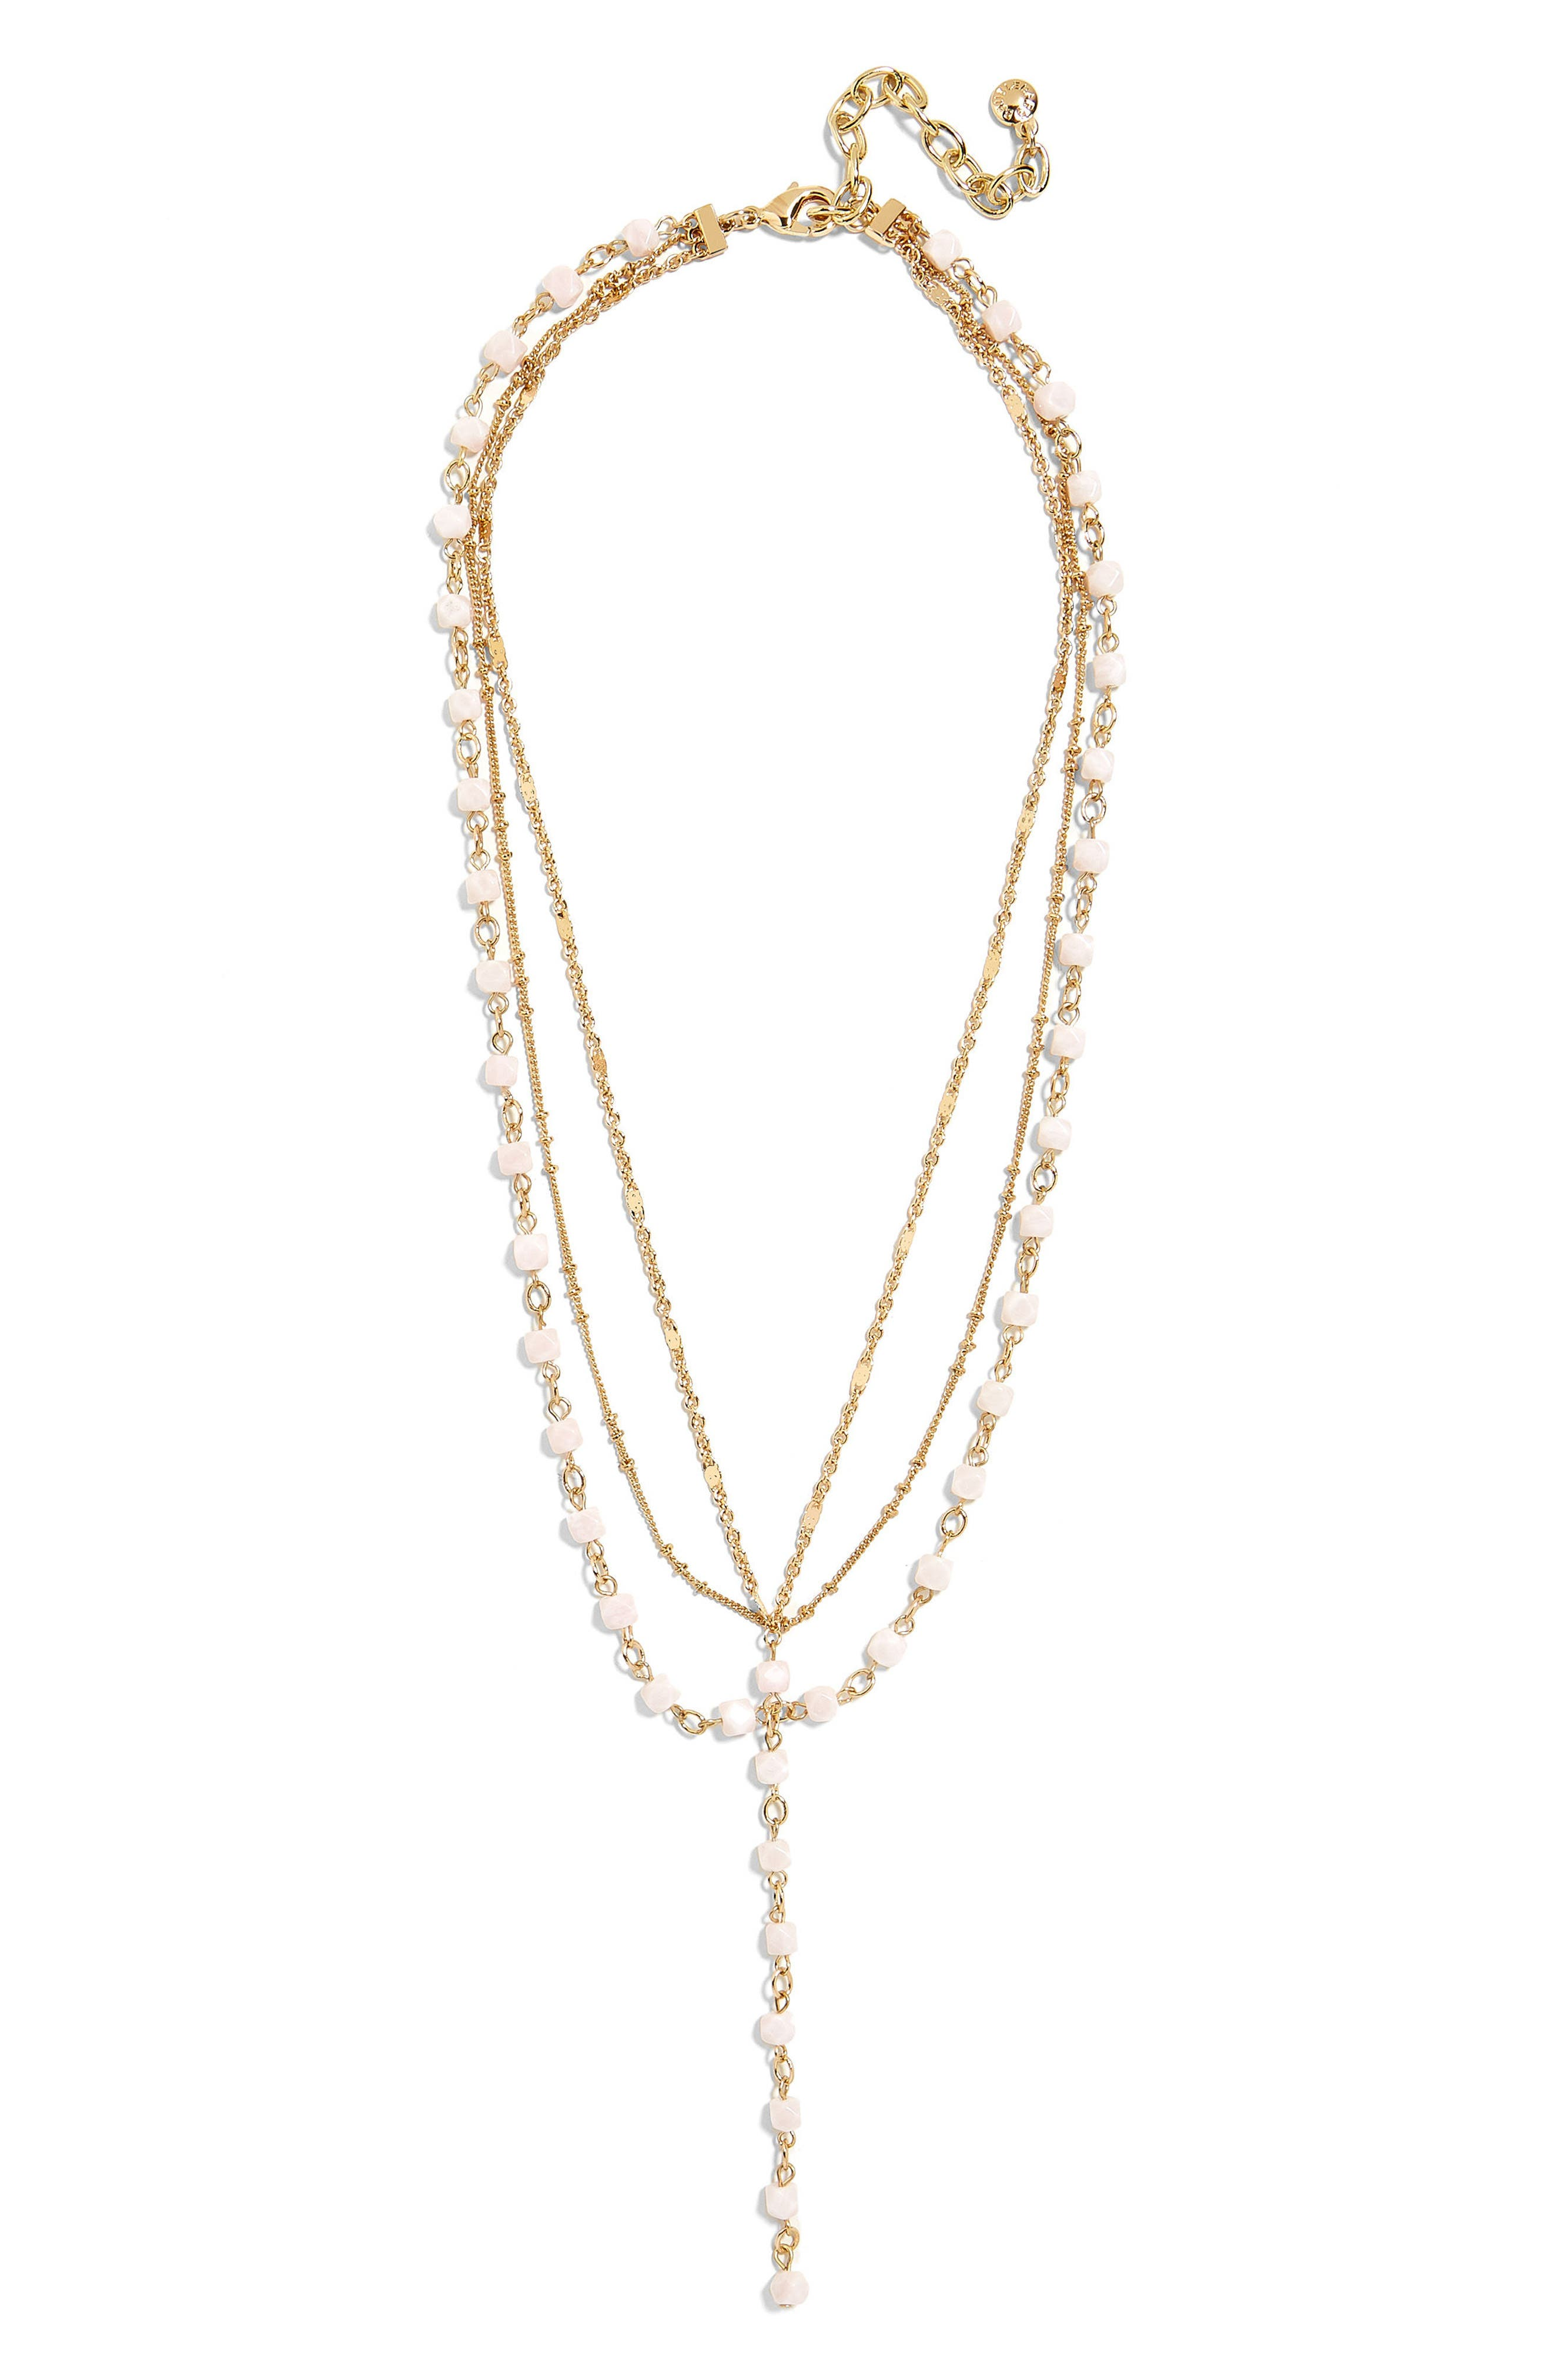 Odelia Layered Y-Chain Necklace,                             Main thumbnail 1, color,                             689